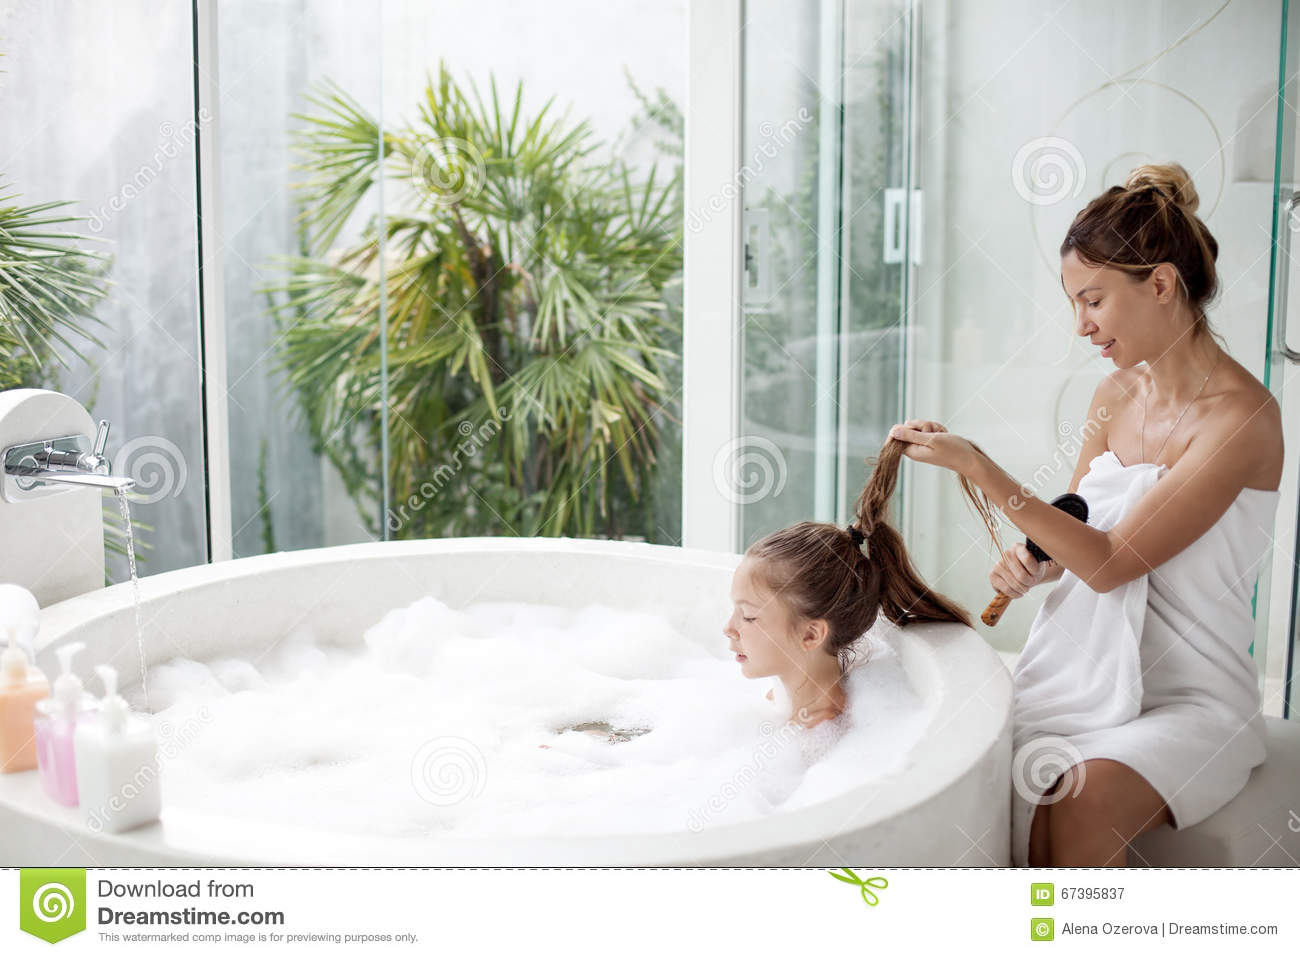 Good, bath with son mom